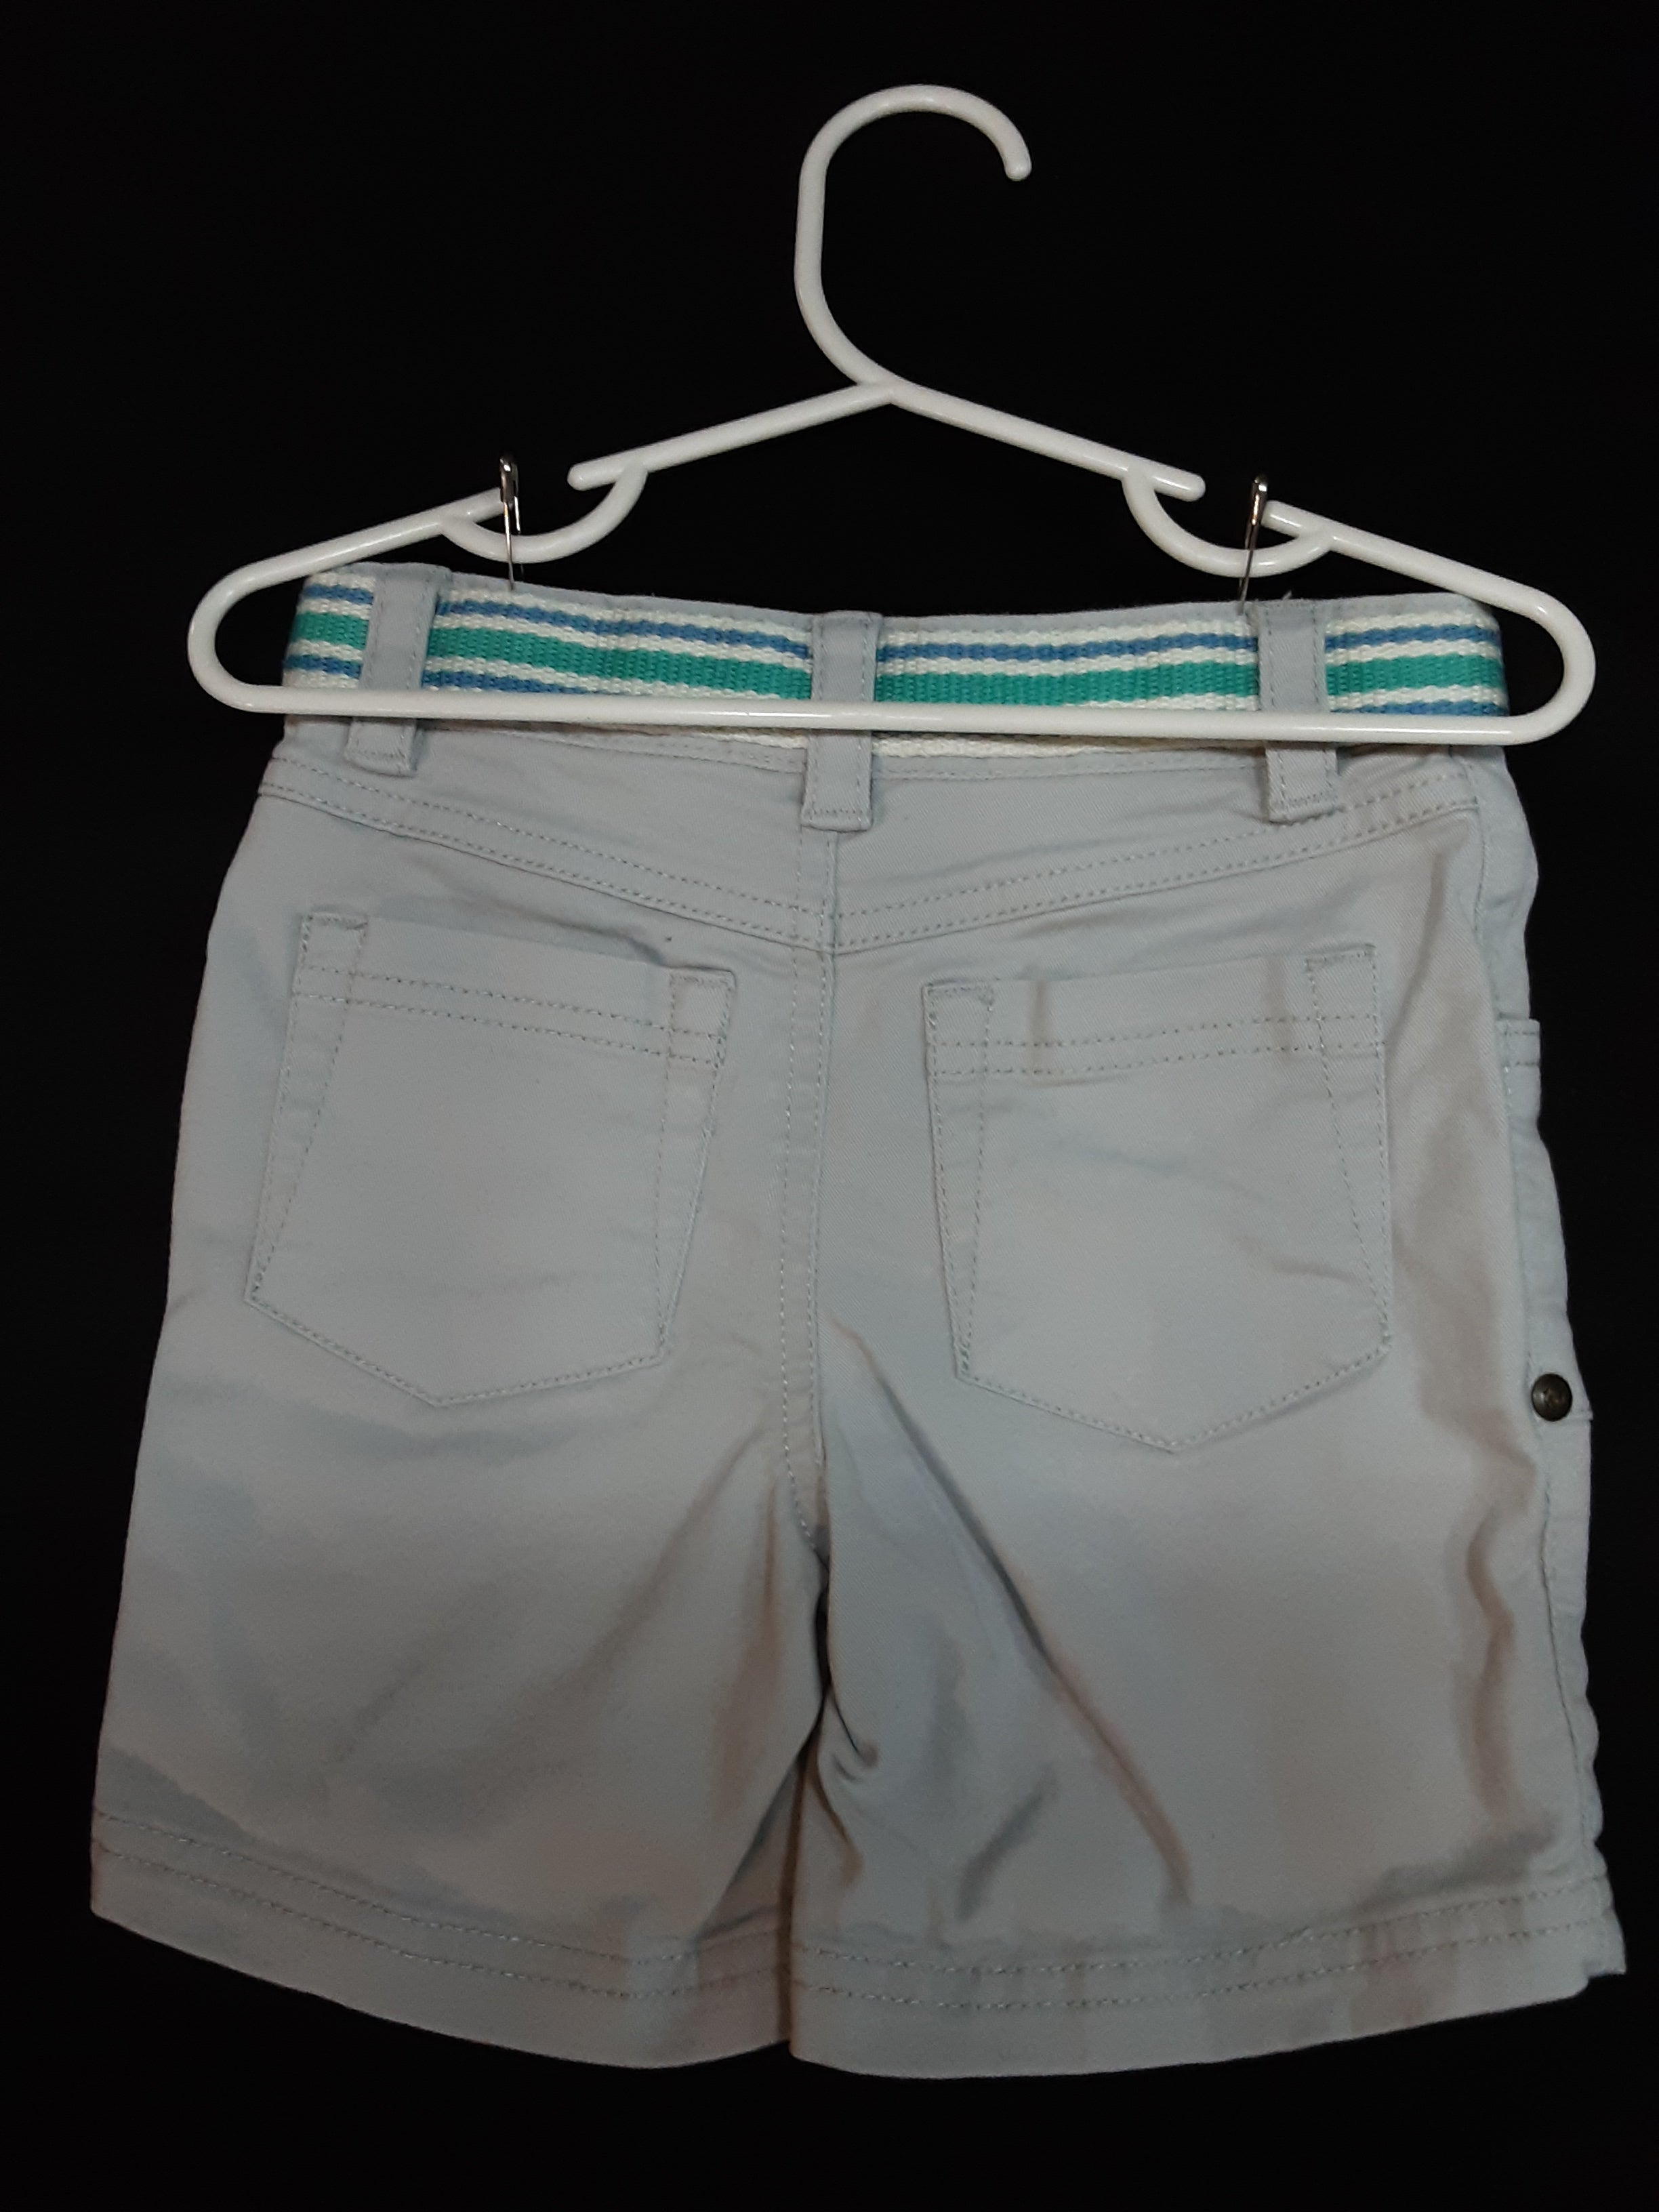 OSH KOSH grey shorts Size 3T boys